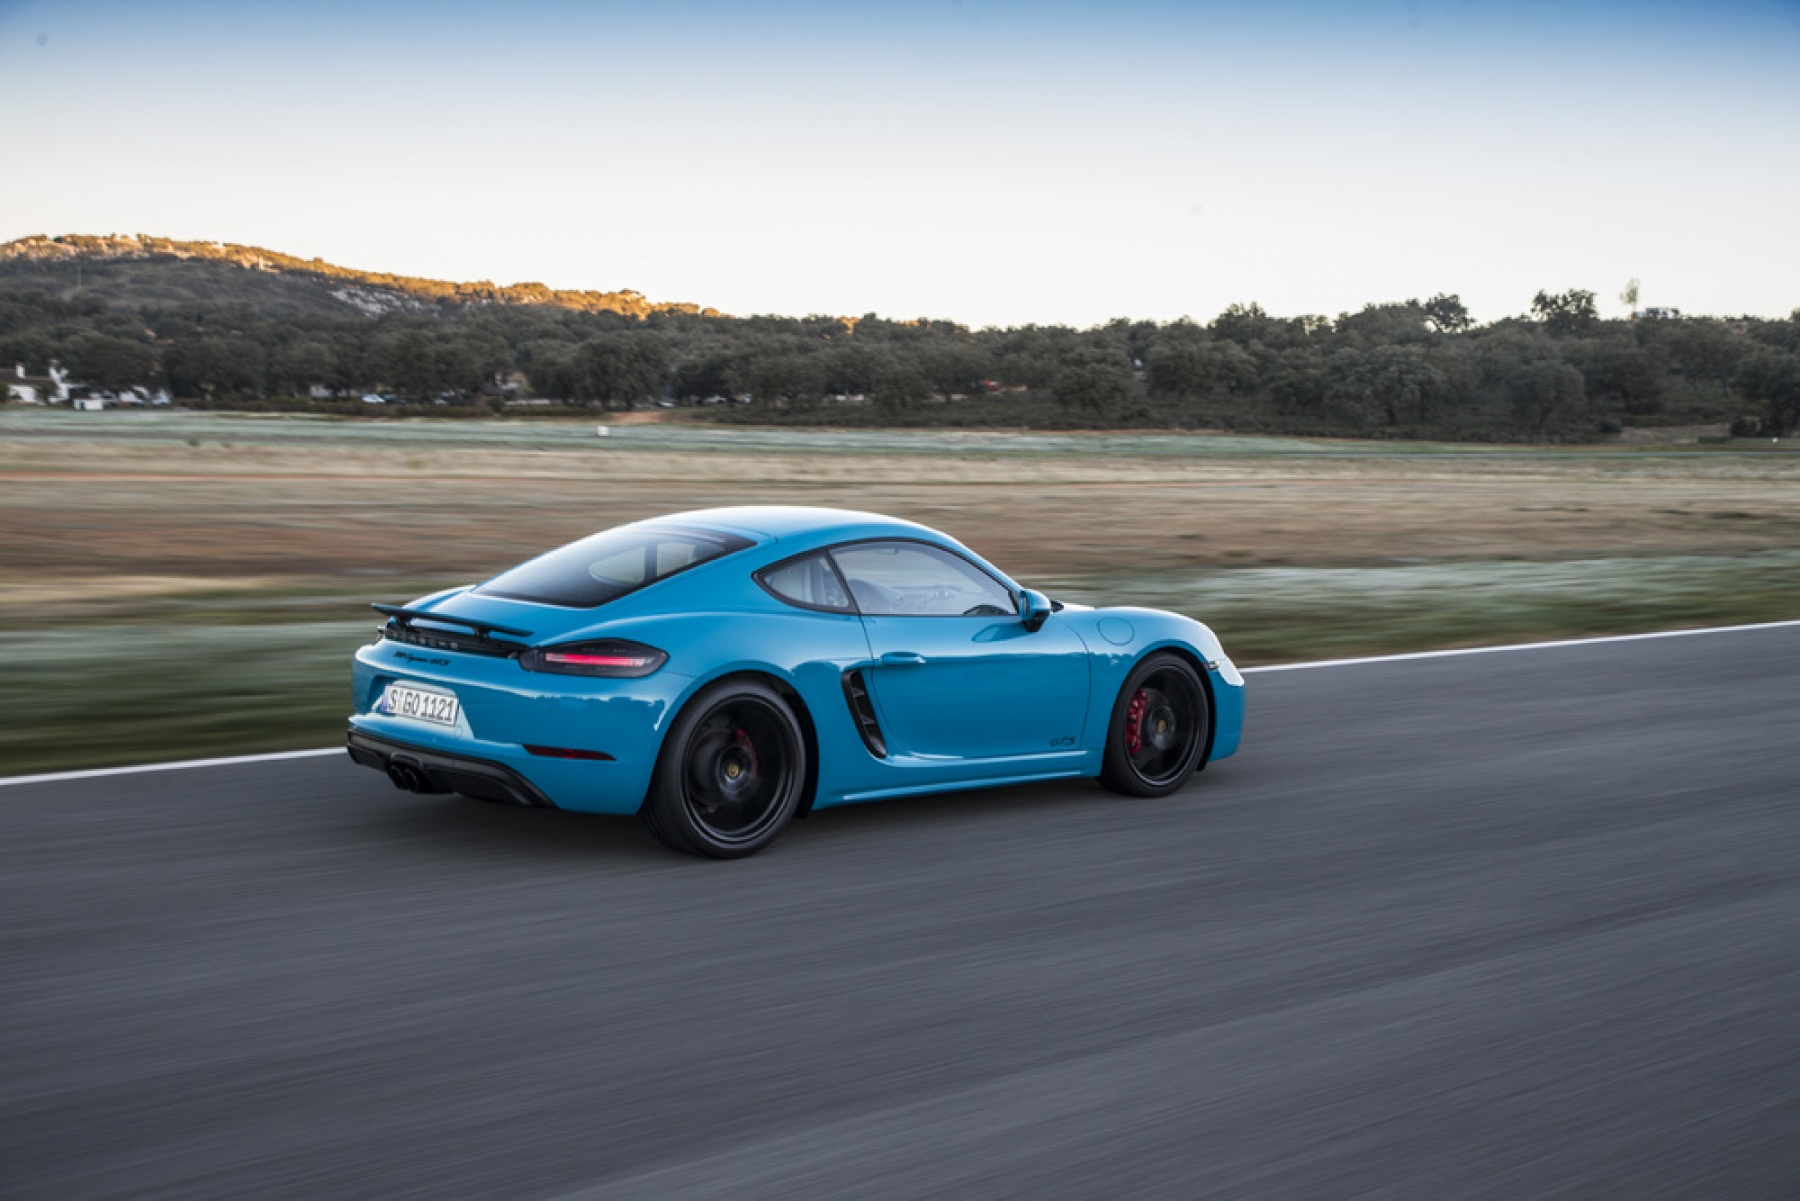 718 cayman gts miami blue the new 718 boxster gts and 718 cayman gts. Black Bedroom Furniture Sets. Home Design Ideas